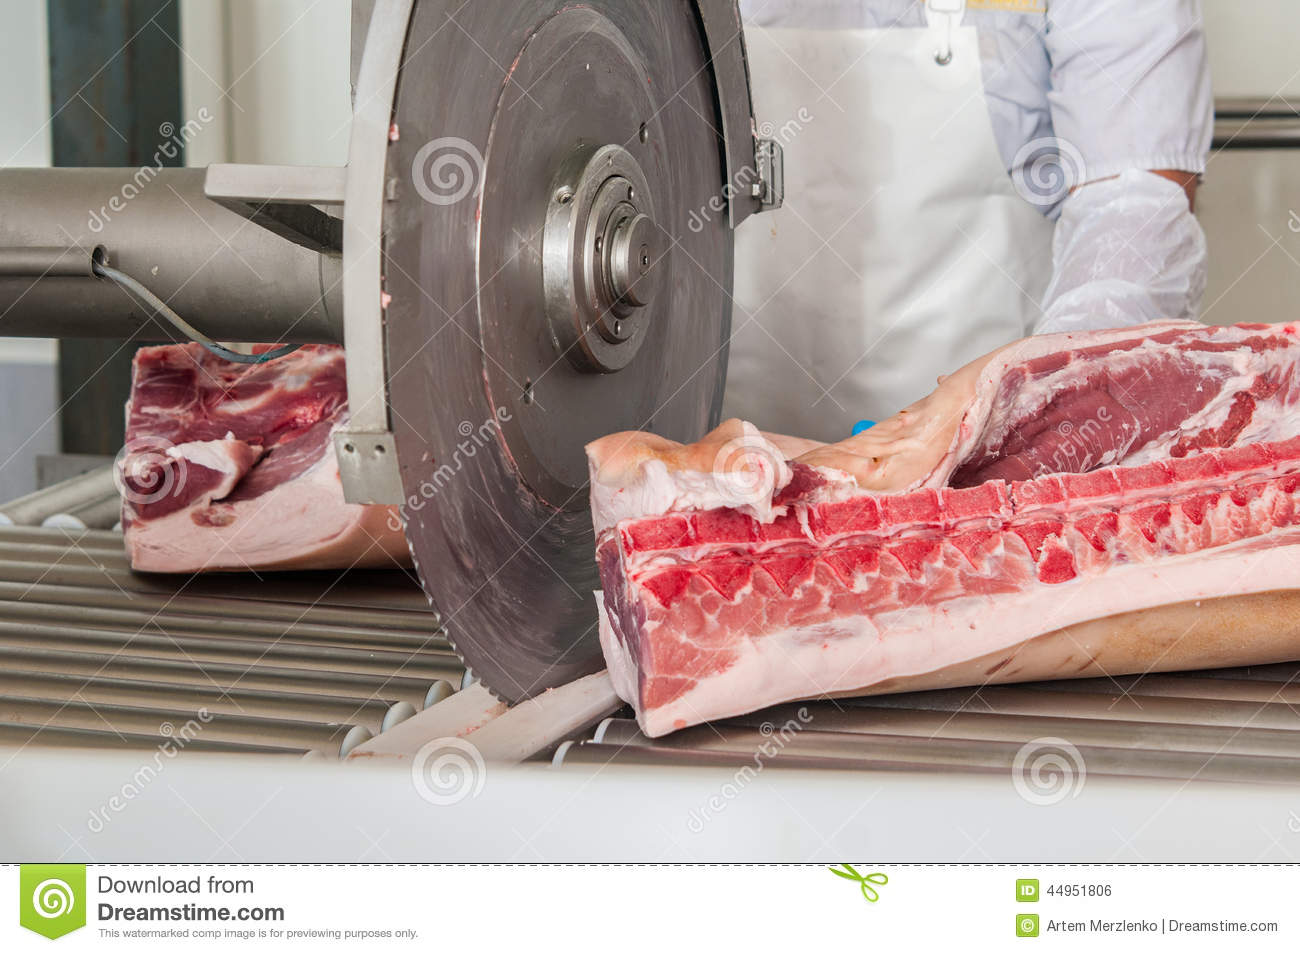 Potential Food Hazards You Can Identify For This Meat Slicer